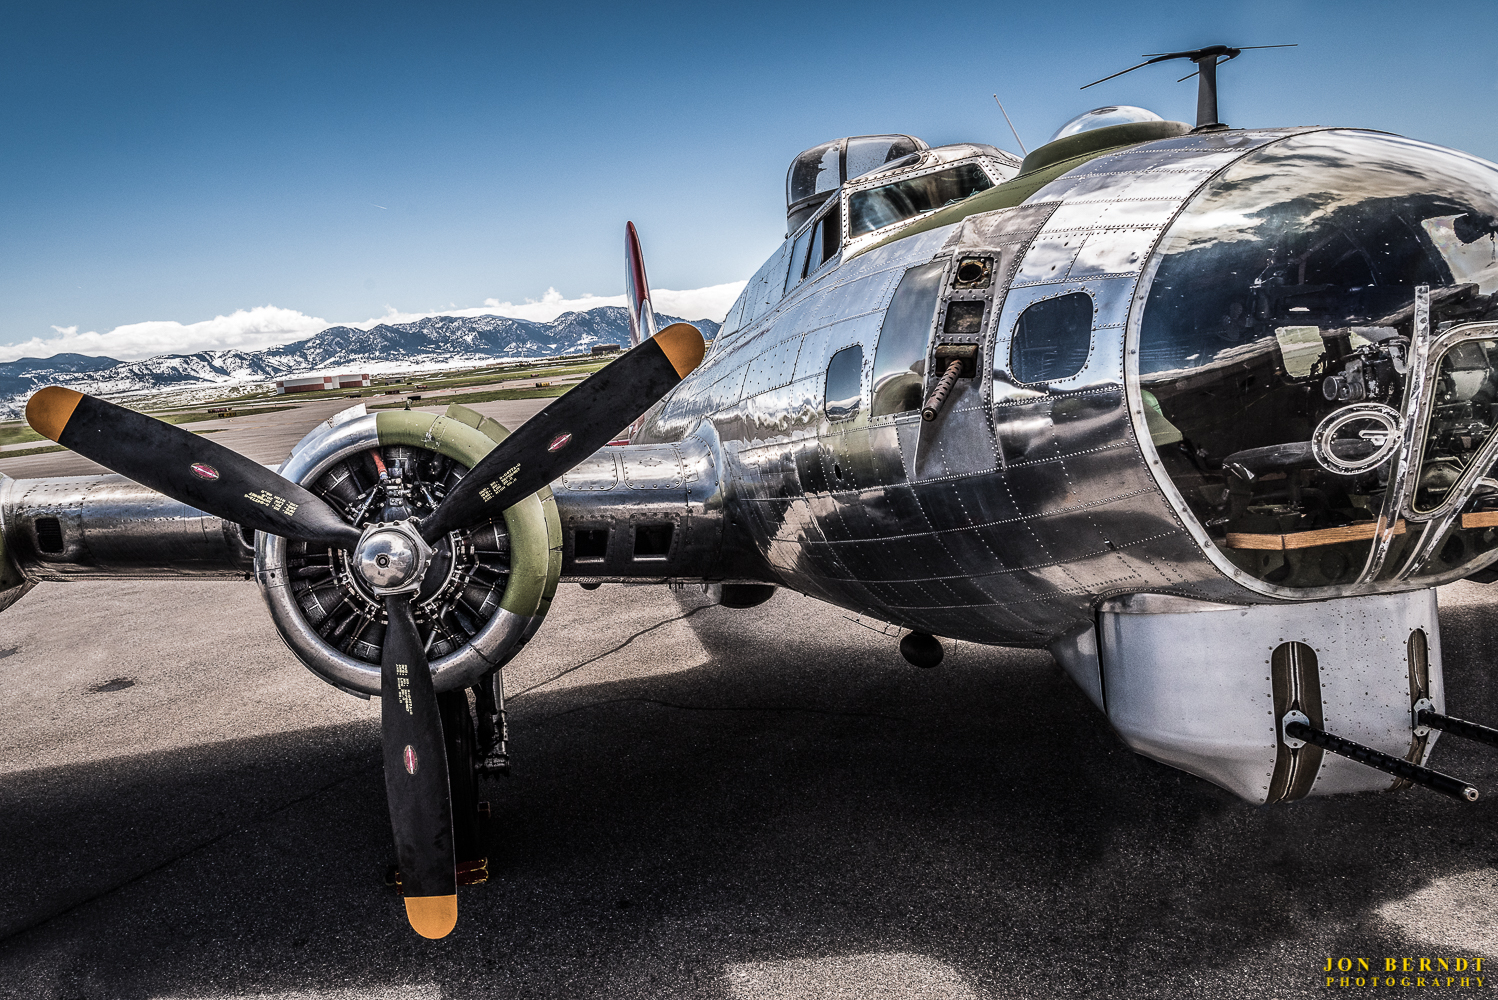 """B-17G """"Madras Maiden"""". This photograph is perhaps my personal favorite of the set. I put the camera on an extended tripod and lift it up, with the shutter set to timer. I had to make quite a number of these exposures before I got one that was right! The """"chrome"""" look in this image is slightly exaggerated, but the intention was to produce a stylized photograph that emphasized the reflections in the aircraft skin. I also wanted to be up close and personal to the cockpit, and this was about the best I could do under the circumstances.   Click here  for information on purchasing a copy of this print."""